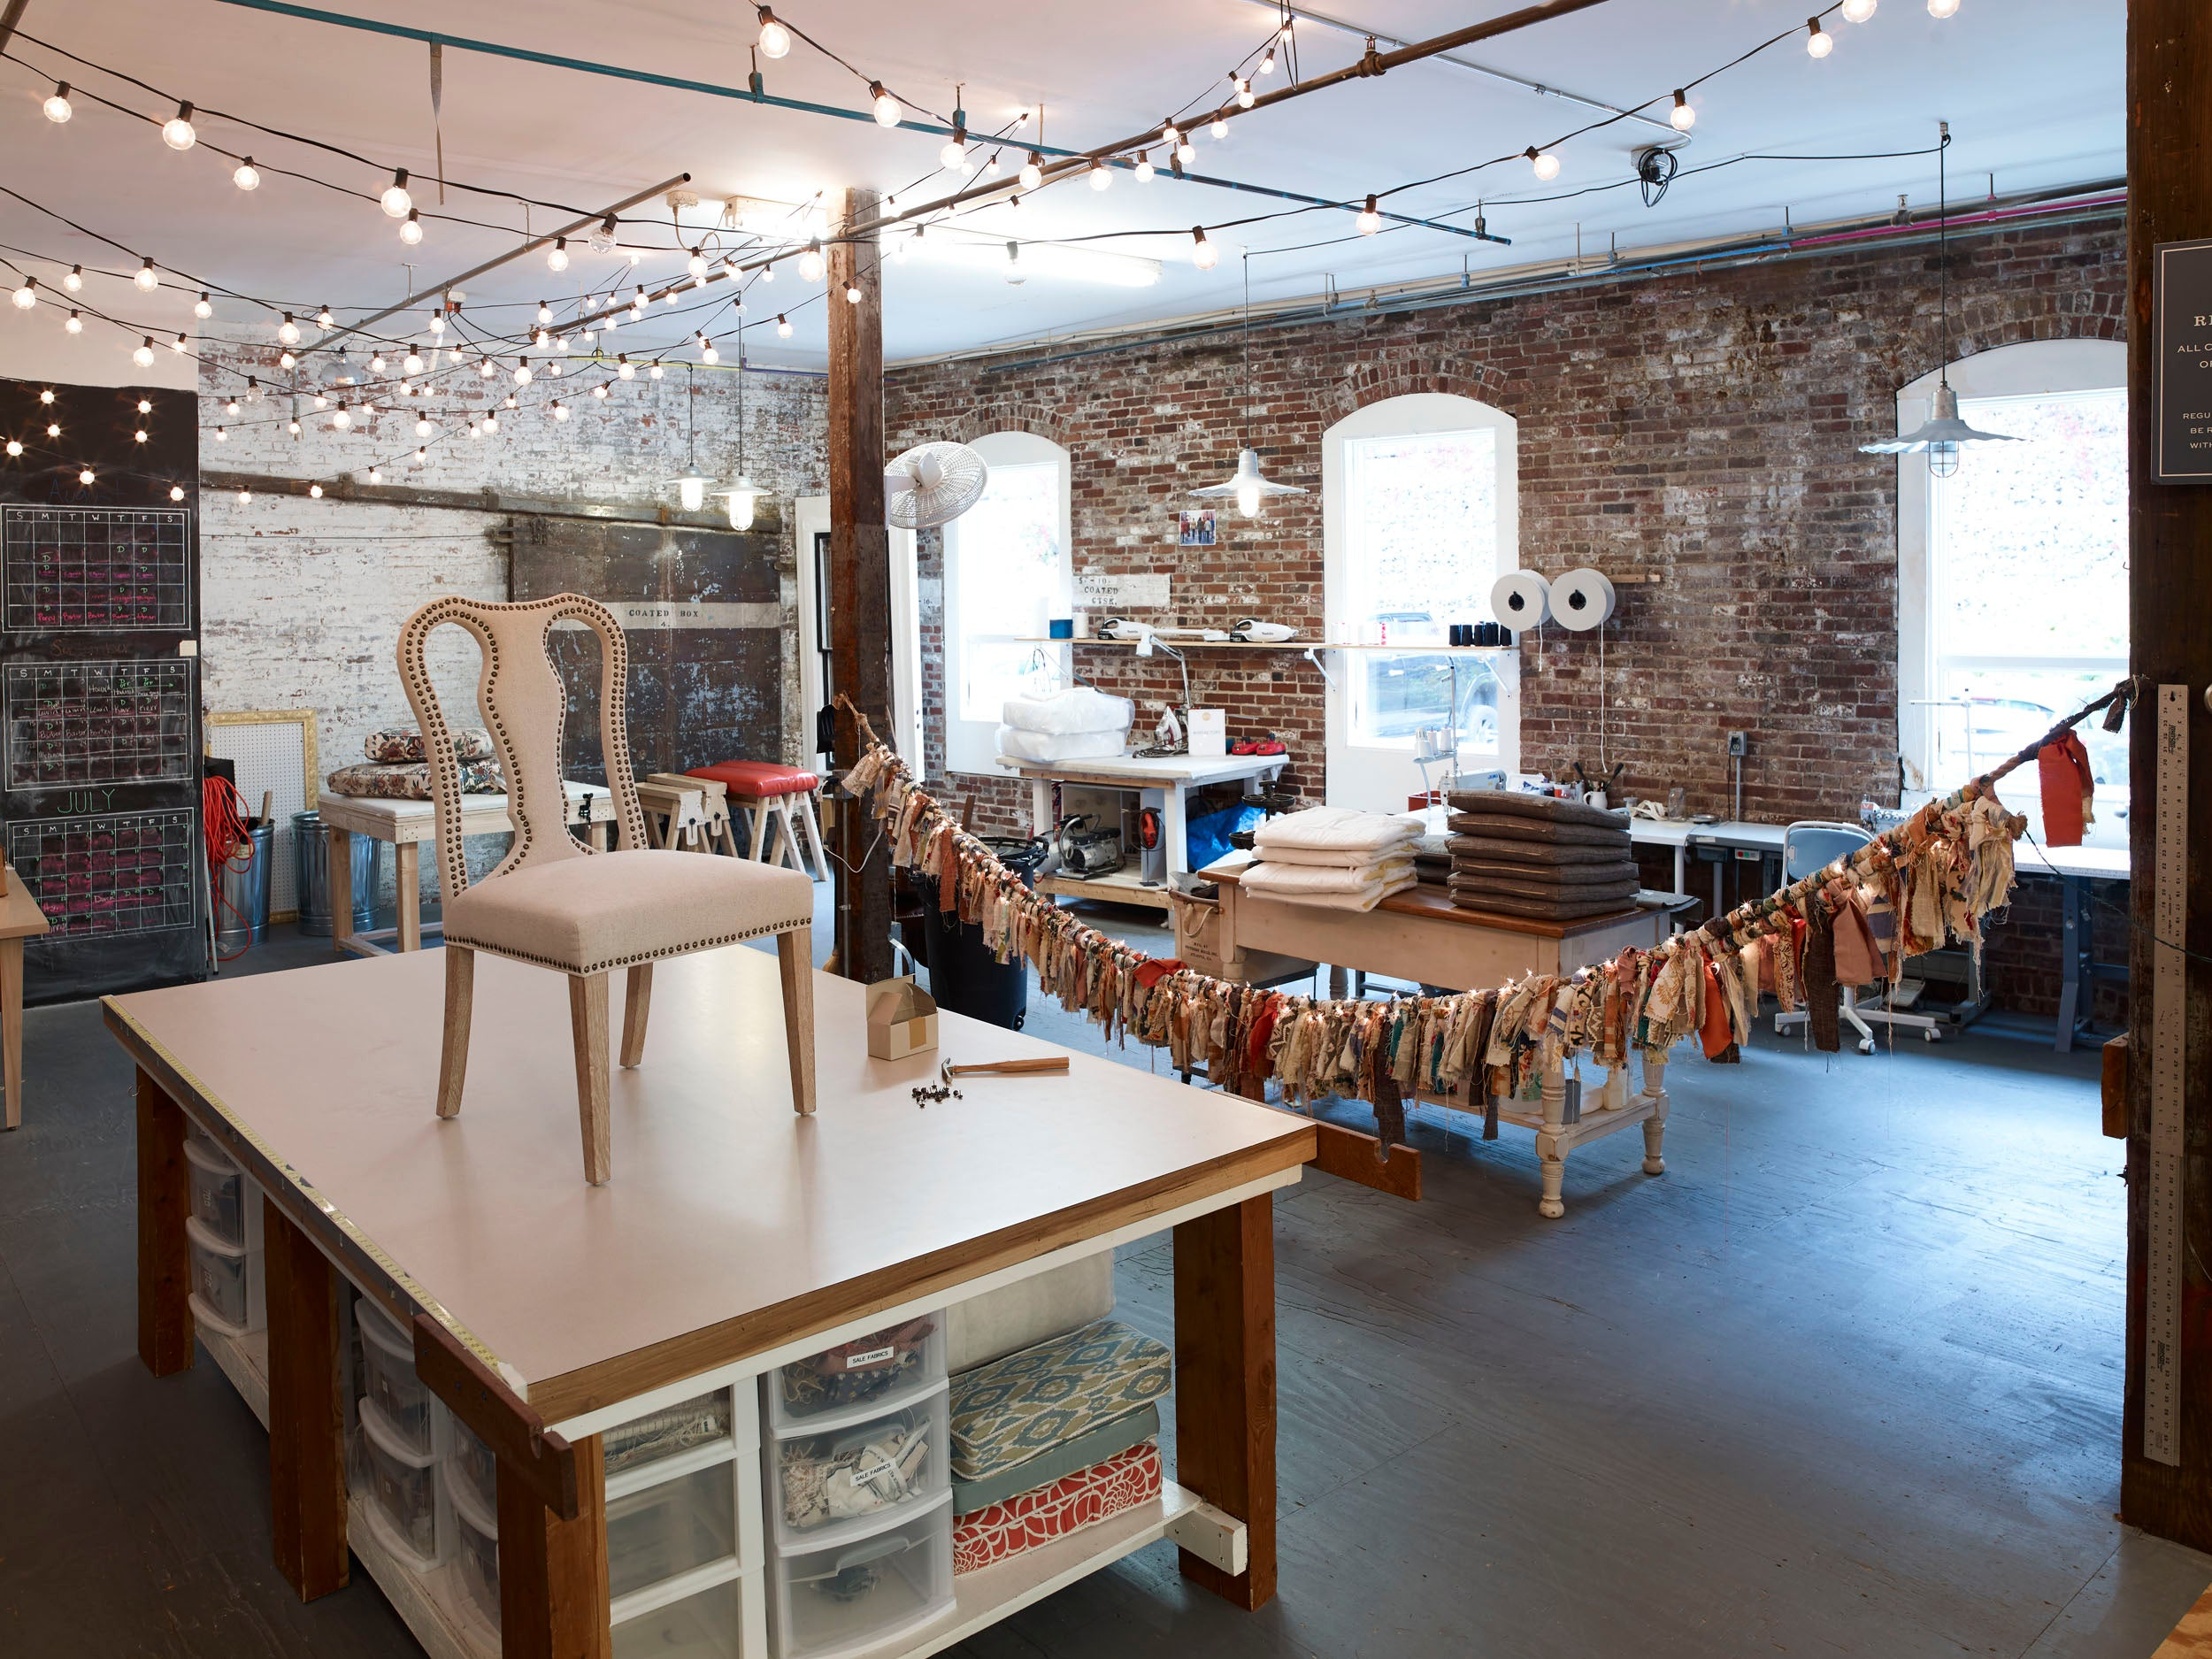 Our onsite sewing and upholstery workroom featuring sewing machines, dreamy lighting, and a large work table.